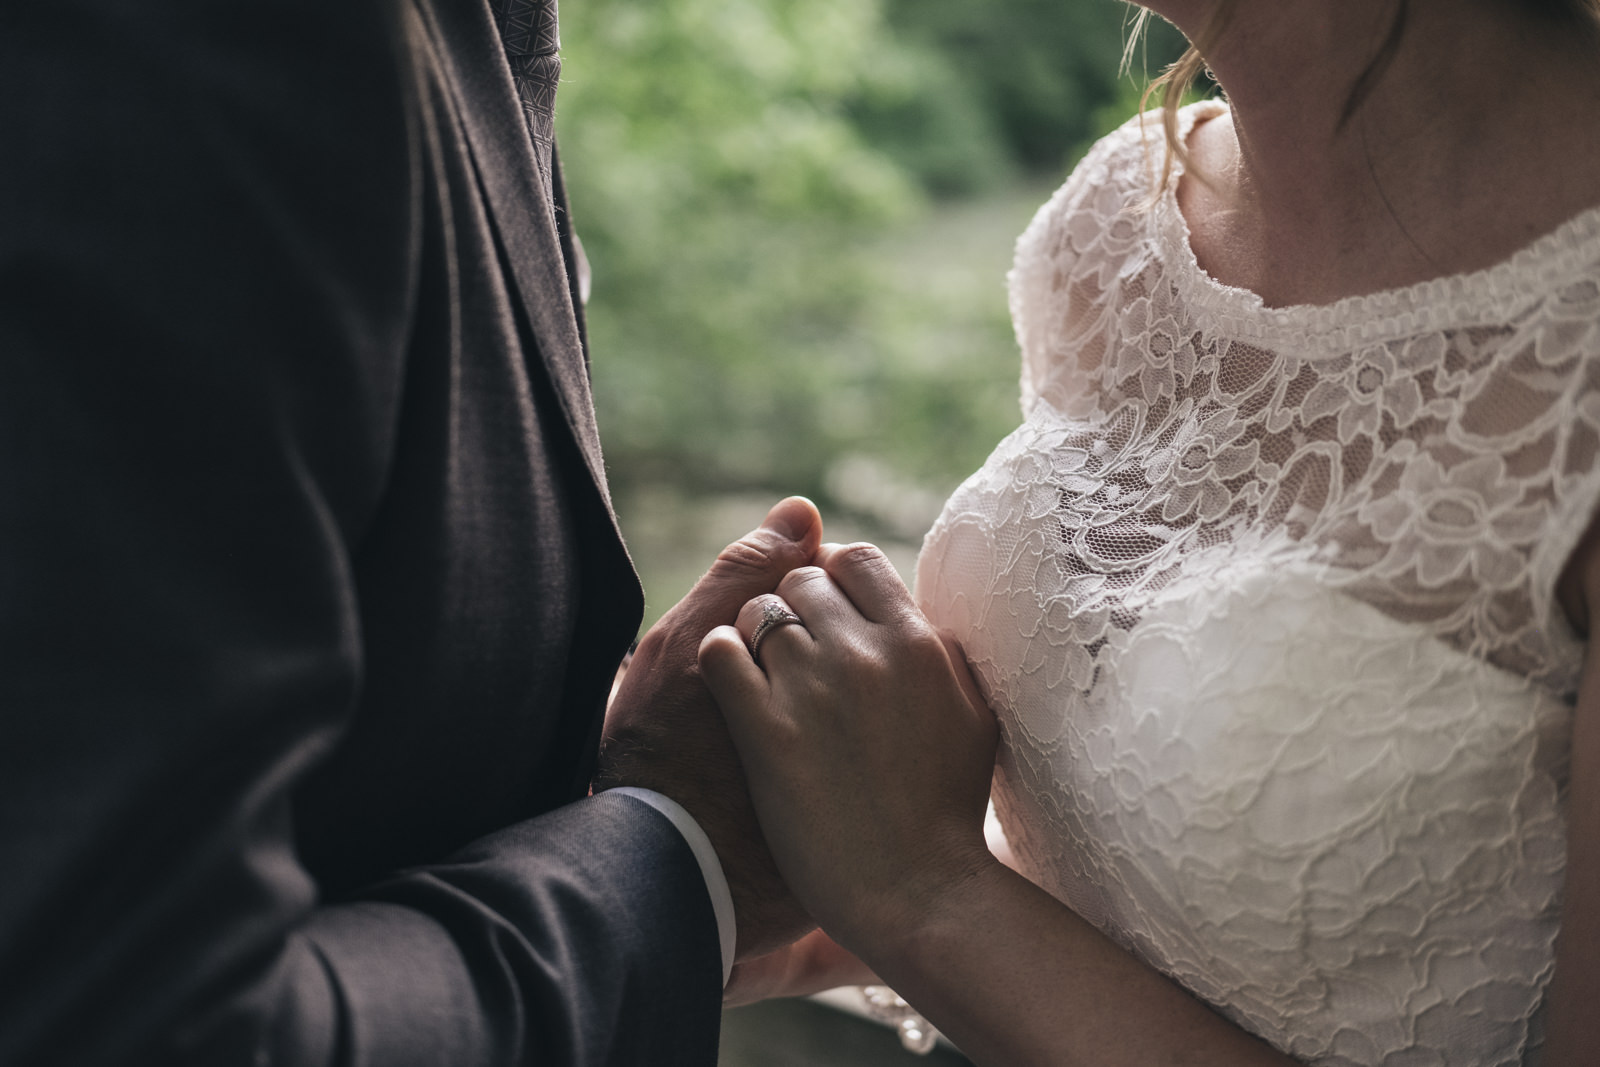 Up close detail picture of the bride and groom's hands on their wedding day.